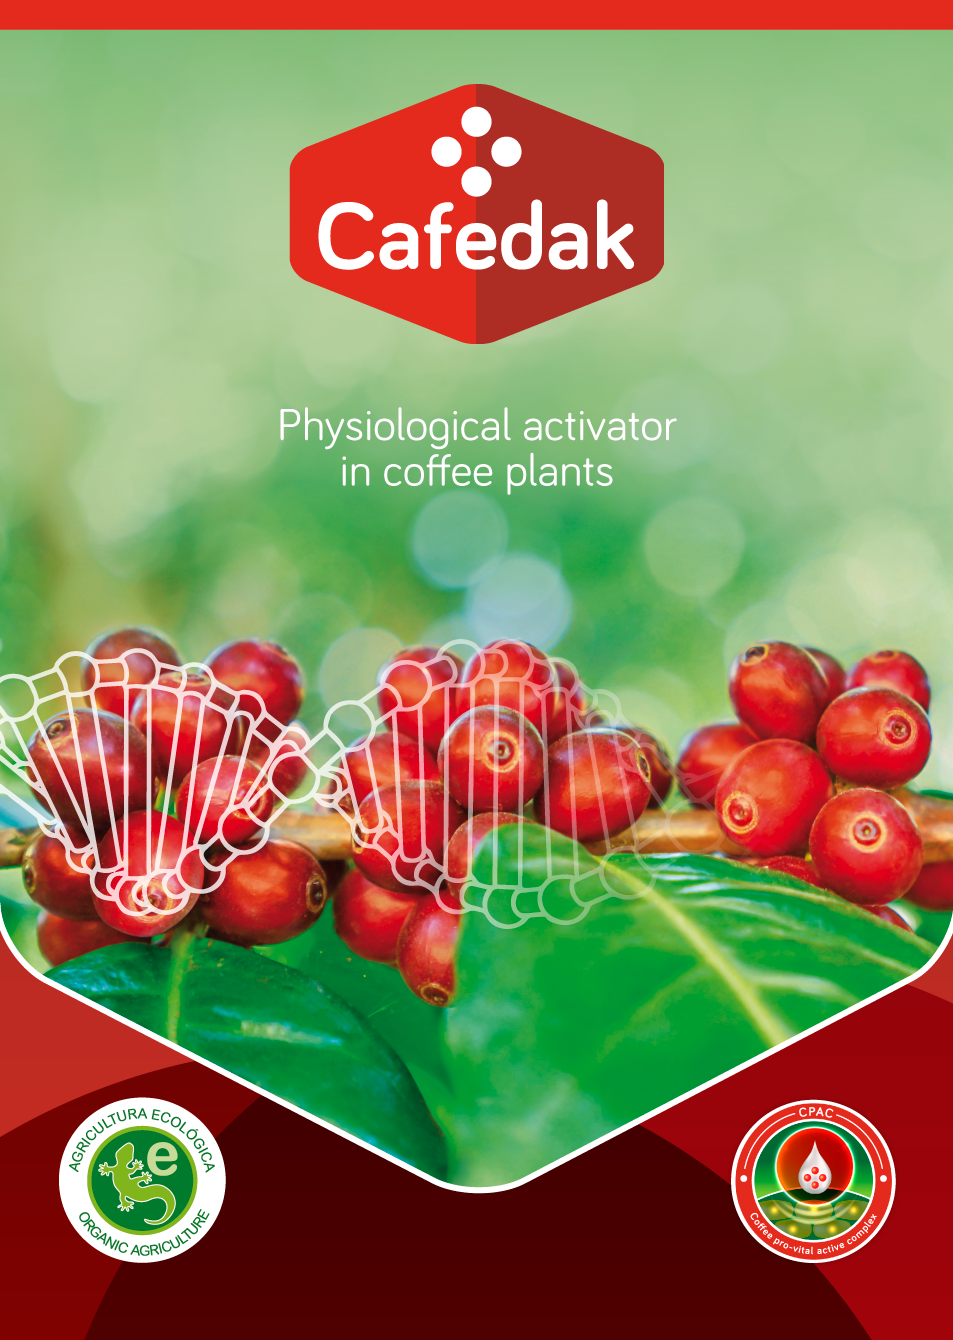 Cafedak: Physiological activator in coffee plants